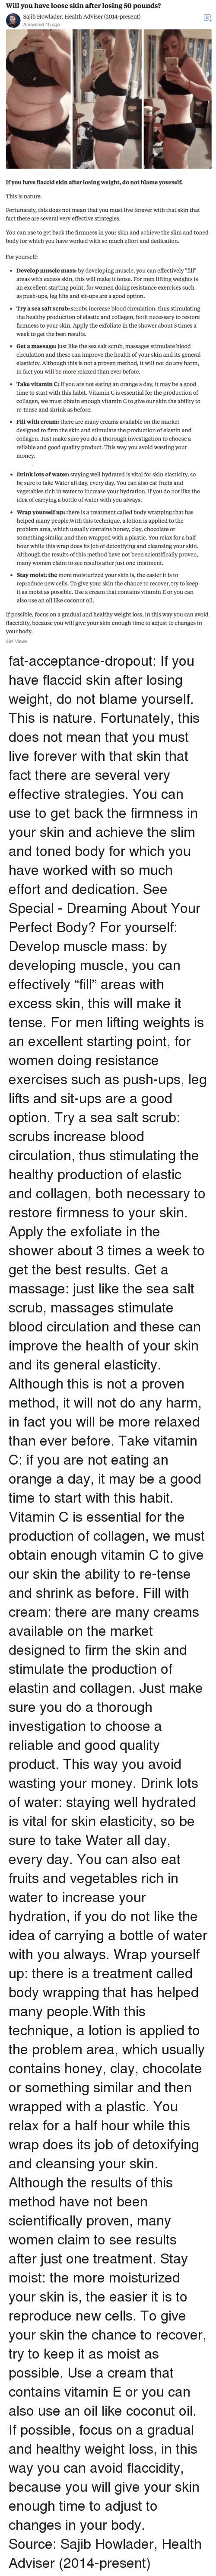 "Massage, Money, and Scrubs: Will you have loose skin after losing 50 pounds?  Sajib Howlader, Health Adviser (2014-present)  Answered 1h ago  8   If you have flaccid skin after losing weight, do not blame yourself.  This is nature.  Fortunately, this does not mean that you must live forever with that skin that  fact there are several very effective strategies.  You can use to get back the firmness in your skin and achieve the slim and toned  body for which you have worked with so much effort and dedication.   For yourself:  * Develop muscle mass: by developing muscle, you can effectively ""fill'""  areas with excess skin, this will make it tense. For men lifting weights is  an excellent starting point, for women doing resistance exercises such  as push-ups, leg lifts and sit-ups are a good option.  Try a sea salt scrub: scrubs increase blood circulation, thus stimulating  the healthy production of elastic and collagen, both necessary to restore  firmness to your skin. Apply the exfoliate in the shower about 3 times a  week to get the best results  Get a massage: just like the sea salt scrub, massages stimulate blood  circulation and these can improve the health of your skin and its general  elasticity. Although this is not a proven method, it will not do any harm,  in fact vou will be more relaxed than ever before,  Take vitamin C: if you are not eating an orange a day, it may be a good  time to start with this habit. Vitamin C is essential for the production of  collagen, we must obtain enough vitamin C to give our skin the ability to  re-tense and shrink as before,  Fill with cream: there are many creams available on the market  designed to firm the skin and stimulate the production of elastin and  collagen. Just make sure you do a thorough investigation to choose a  reliable and good quality product. This way you avoid wasting your  money.   . Drinklots ofwater: staying well hydrated is vital for skin elasticity, so  be sure to take Water all day, every day. You can also eat fruits and  vegetables rich in water to increase your hydration, if you do not like the  idea of carrying a bottle of water with you always.  Wrap yourself up: there is a treatment called body wrapping that has  helped many people.With this technique, a lotion is applied to thee  problem area, which usually contains honey, clay, chocolate or  something similar and then wrapped with a plastic. You relax for a half  hour while this wrap does its job of detoxifying and cleansing your skin  Although the results of this method have not been scientifically proven,  many women claim to see results after just one treatment.  Stay moist: the more moisturized your skin is, the easier it is to  reproduce new cells. To give your skin the chance to recover, try to keep  it as moist as possible. Use a cream that contains vitamin E or you can  also use an oil like coconut oil,  .  If possible, focus on a gradual and healthy weight loss, in this way you can avoid  flaccidity, because you will give your skin enough time to adjust to changes in  your body.  284 Views fat-acceptance-dropout: If you have flaccid skin after losing weight, do not blame yourself. This is nature. Fortunately, this does not mean that you must live forever with that skin that fact there are several very effective strategies. You can use to get back the firmness in your skin and achieve the slim and toned body for which you have worked with so much effort and dedication. See Special - Dreaming About Your Perfect Body? For yourself:  Develop muscle mass: by developing muscle, you can effectively ""fill"" areas with excess skin, this will make it tense. For men lifting weights is an excellent starting point, for women doing resistance exercises such as push-ups, leg lifts and sit-ups are a good option.  Try a sea salt scrub: scrubs increase blood circulation, thus stimulating the healthy production of elastic and collagen, both necessary to restore firmness to your skin. Apply the exfoliate in the shower about 3 times a week to get the best results.  Get a massage: just like the sea salt scrub, massages stimulate blood circulation and these can improve the health of your skin and its general elasticity. Although this is not a proven method, it will not do any harm, in fact you will be more relaxed than ever before.  Take vitamin C: if you are not eating an orange a day, it may be a good time to start with this habit. Vitamin C is essential for the production of collagen, we must obtain enough vitamin C to give our skin the ability to re-tense and shrink as before.  Fill with cream: there are many creams available on the market designed to firm the skin and stimulate the production of elastin and collagen. Just make sure you do a thorough investigation to choose a reliable and good quality product. This way you avoid wasting your money.  Drink lots of water: staying well hydrated is vital for skin elasticity, so be sure to take Water all day, every day. You can also eat fruits and vegetables rich in water to increase your hydration, if you do not like the idea of carrying a bottle of water with you always.  Wrap yourself up: there is a treatment called body wrapping that has helped many people.With this technique, a lotion is applied to the problem area, which usually contains honey, clay, chocolate or something similar and then wrapped with a plastic. You relax for a half hour while this wrap does its job of detoxifying and cleansing your skin. Although the results of this method have not been scientifically proven, many women claim to see results after just one treatment.  Stay moist: the more moisturized your skin is, the easier it is to reproduce new cells. To give your skin the chance to recover, try to keep it as moist as possible. Use a cream that contains vitamin E or you can also use an oil like coconut oil. If possible, focus on a gradual and healthy weight loss, in this way you can avoid flaccidity, because you will give your skin enough time to adjust to changes in your body.  Source: Sajib Howlader, Health Adviser (2014-present)"